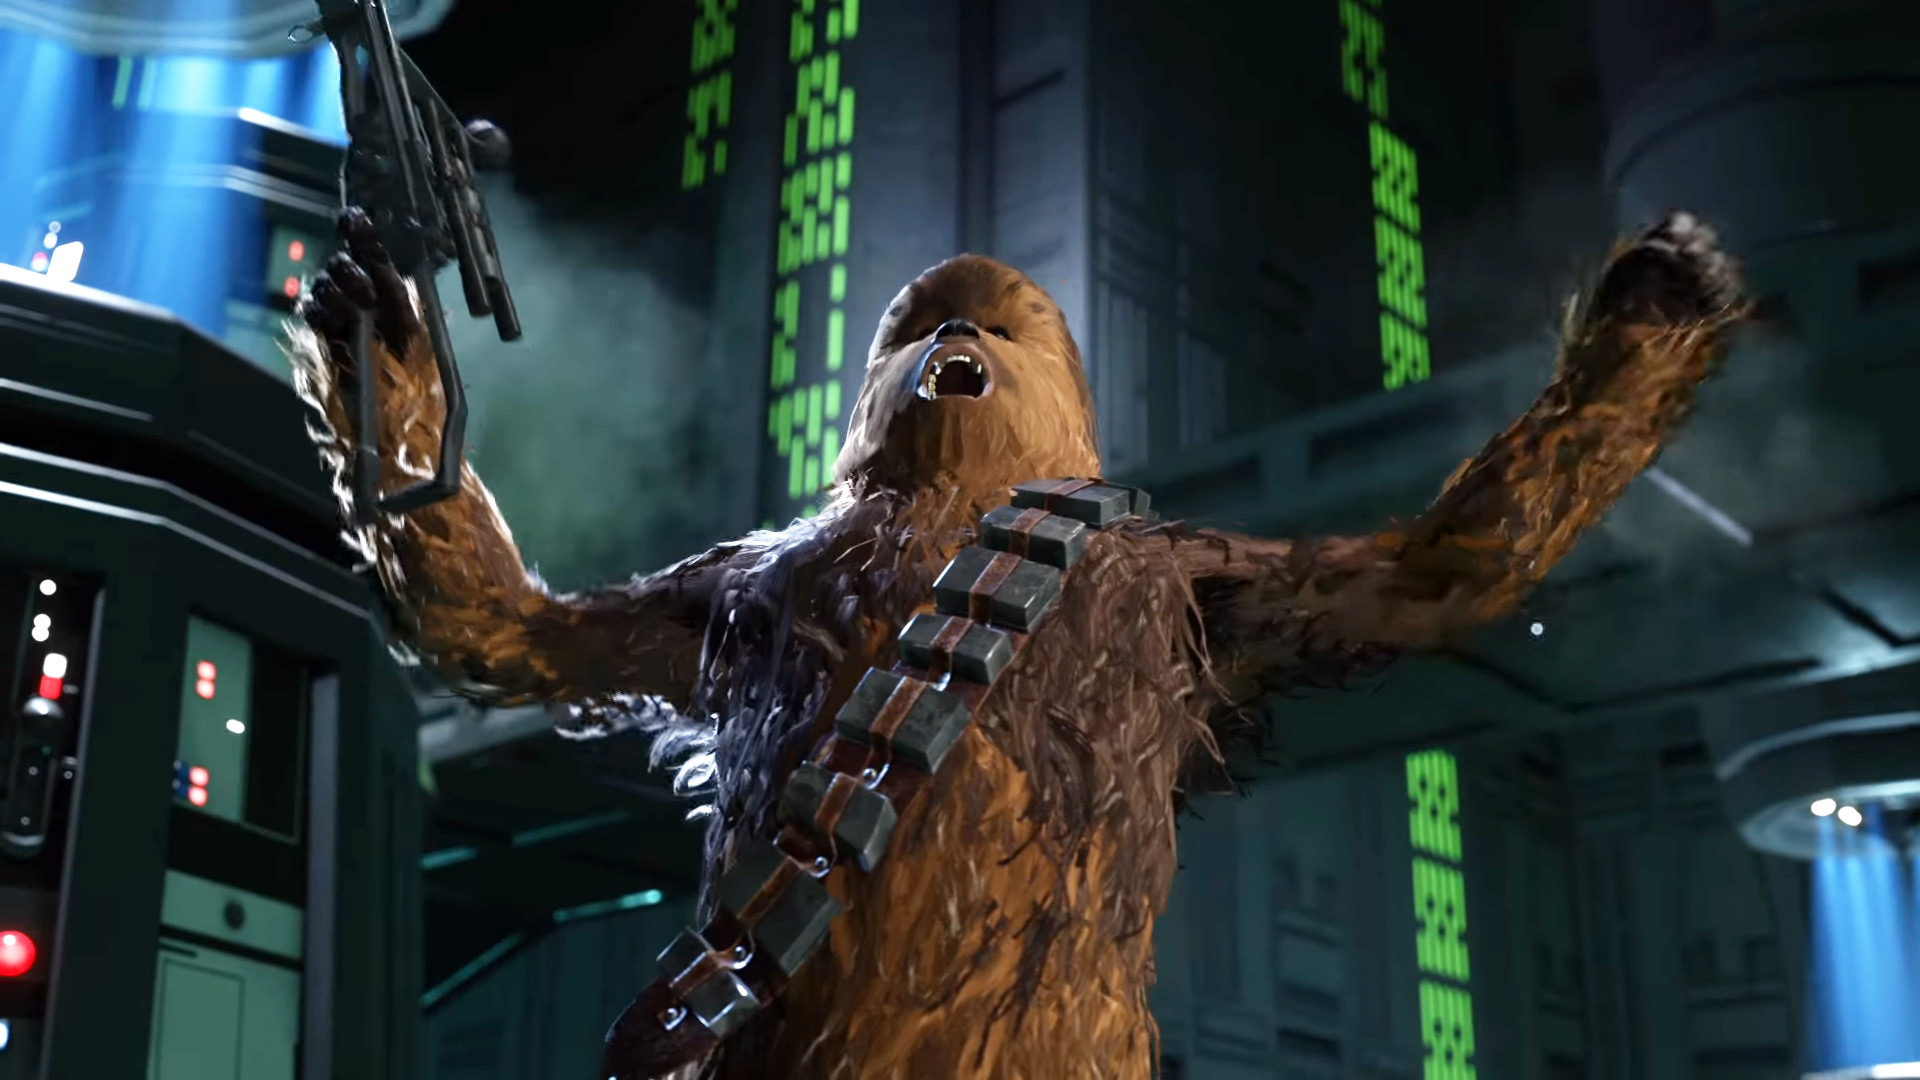 Star Wars Battlefront Players Get Double Xp And Free Access To Death Star Dlc Over Christmas Weekend Gamesradar